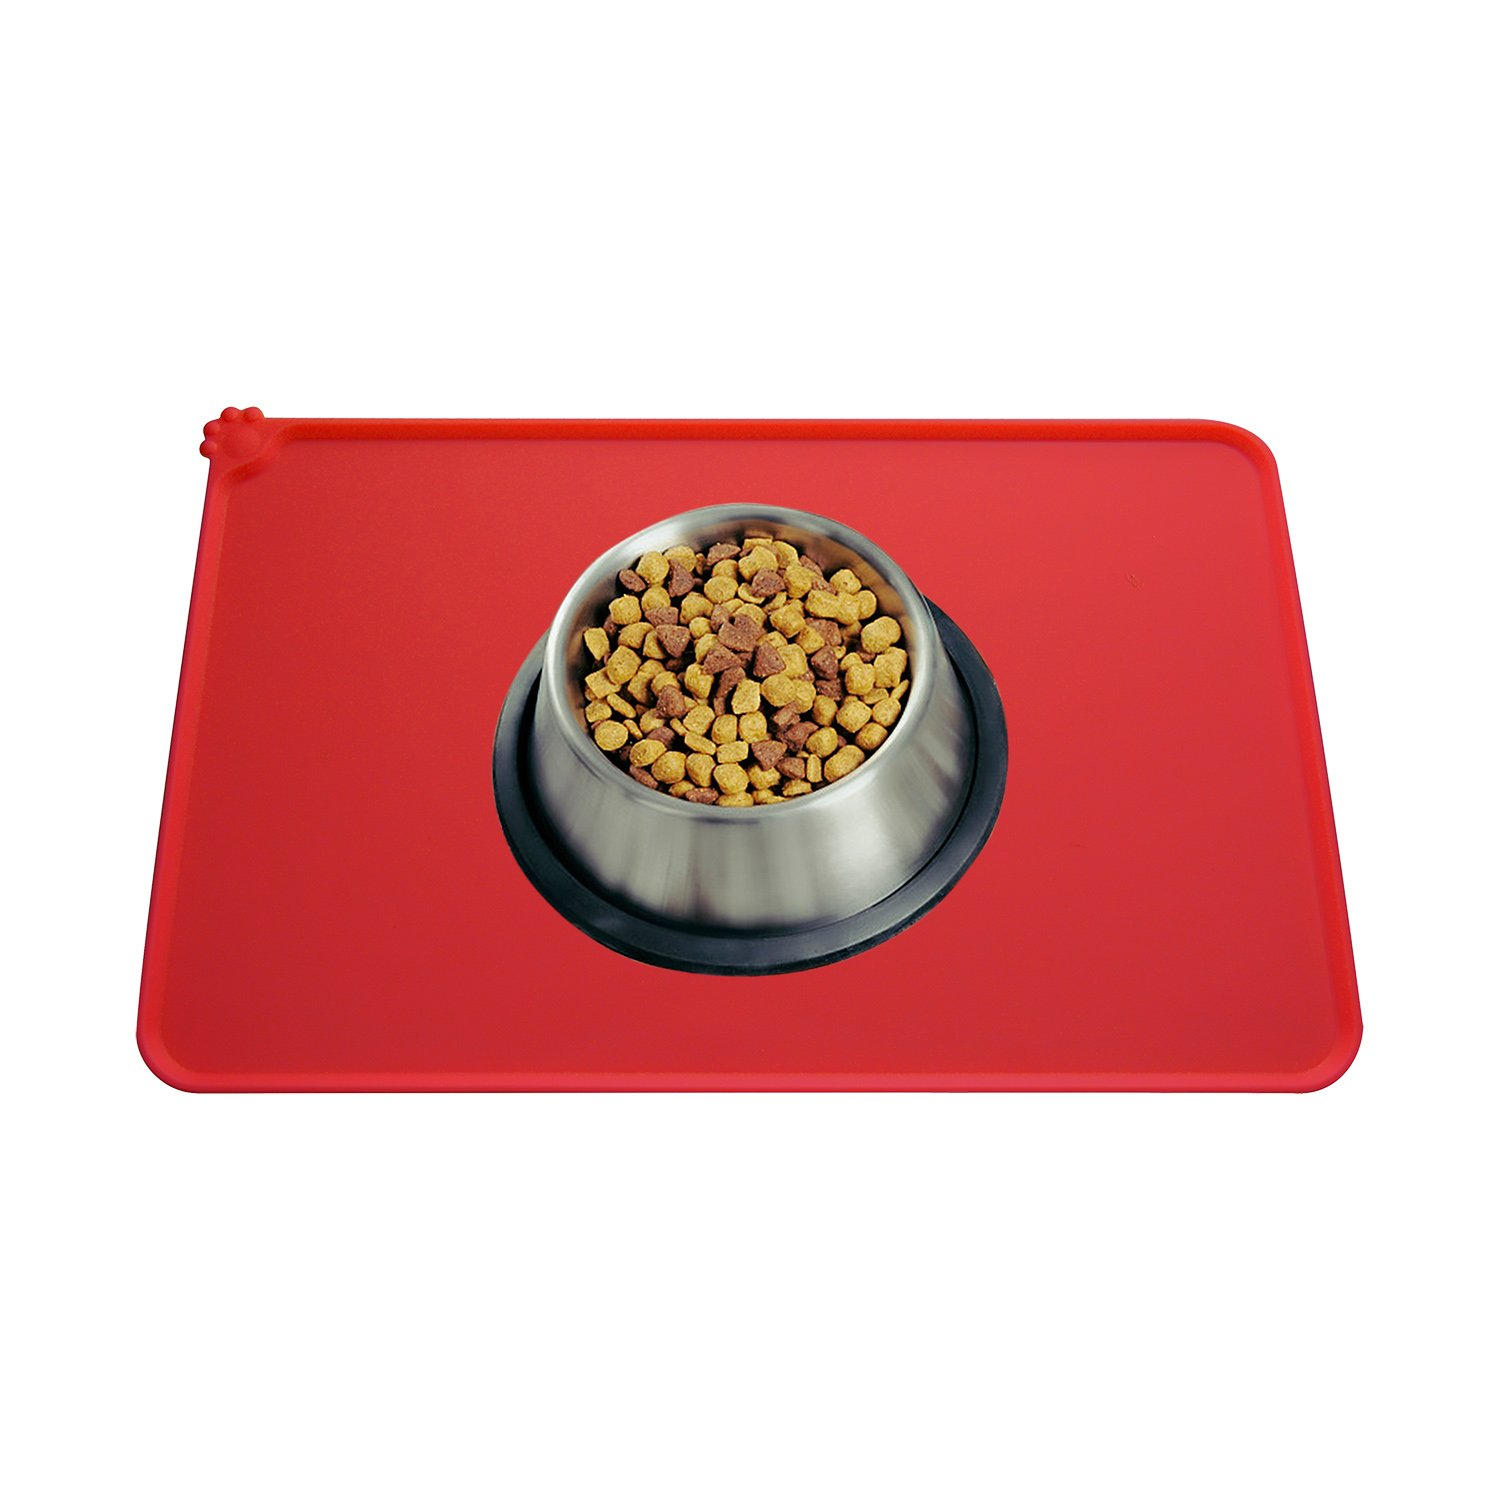 Guardians Dog Food Mat, Silicone Pet Feeding Mats, Non Slip Waterproof Cat Bowl Trays Food Container Placemat for Small Animals (18.5''x11.8'', Red) by Guardians (Image #2)